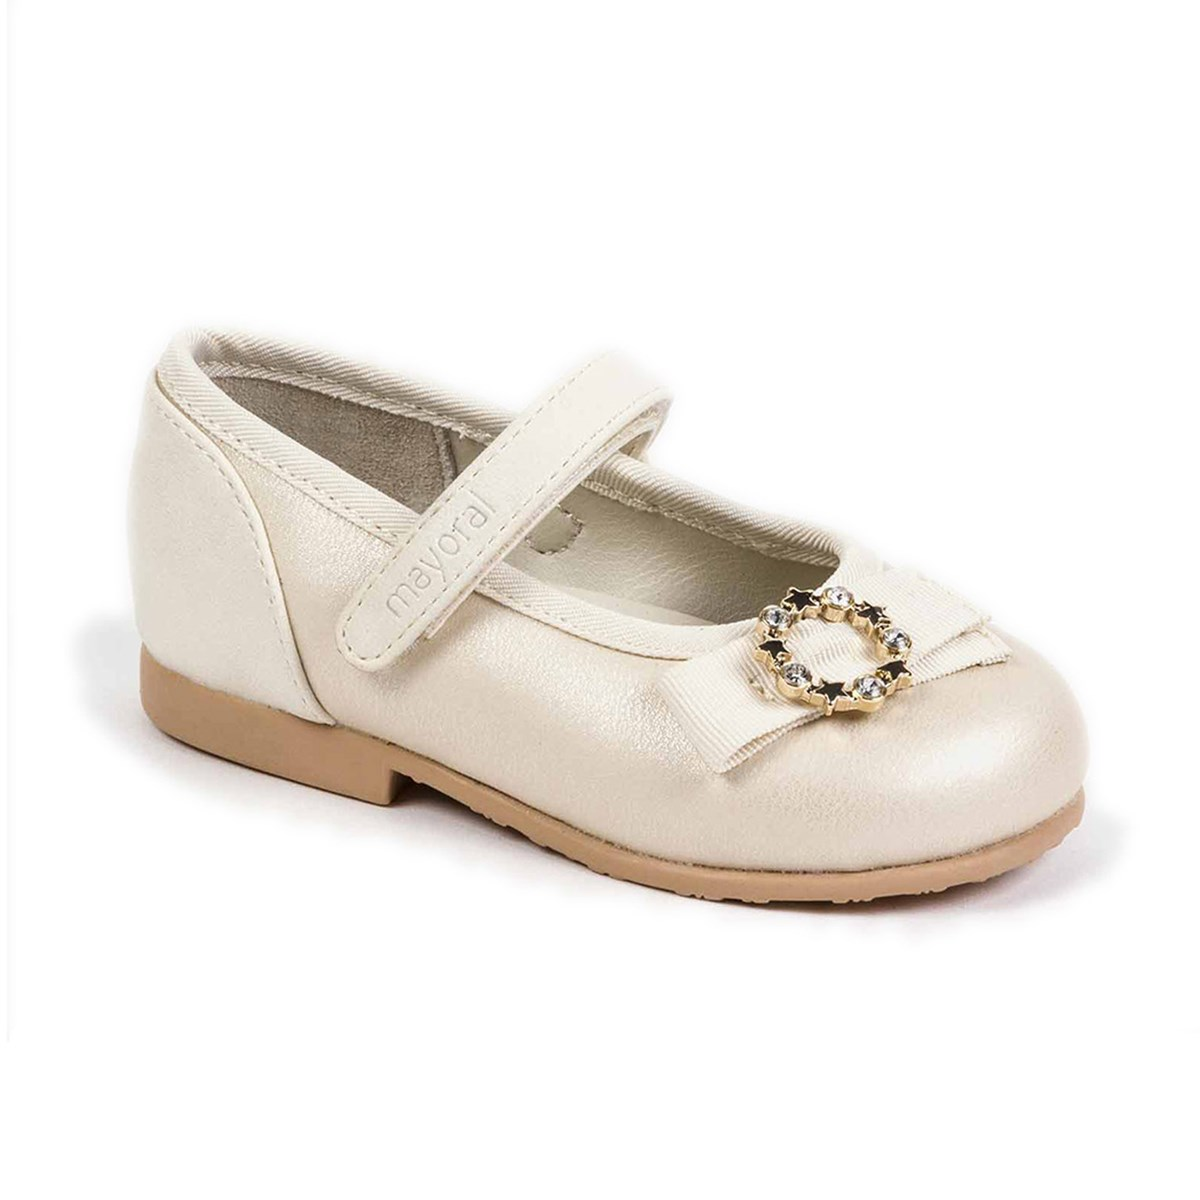 Mayoral - Mary Jane Shoes Off White